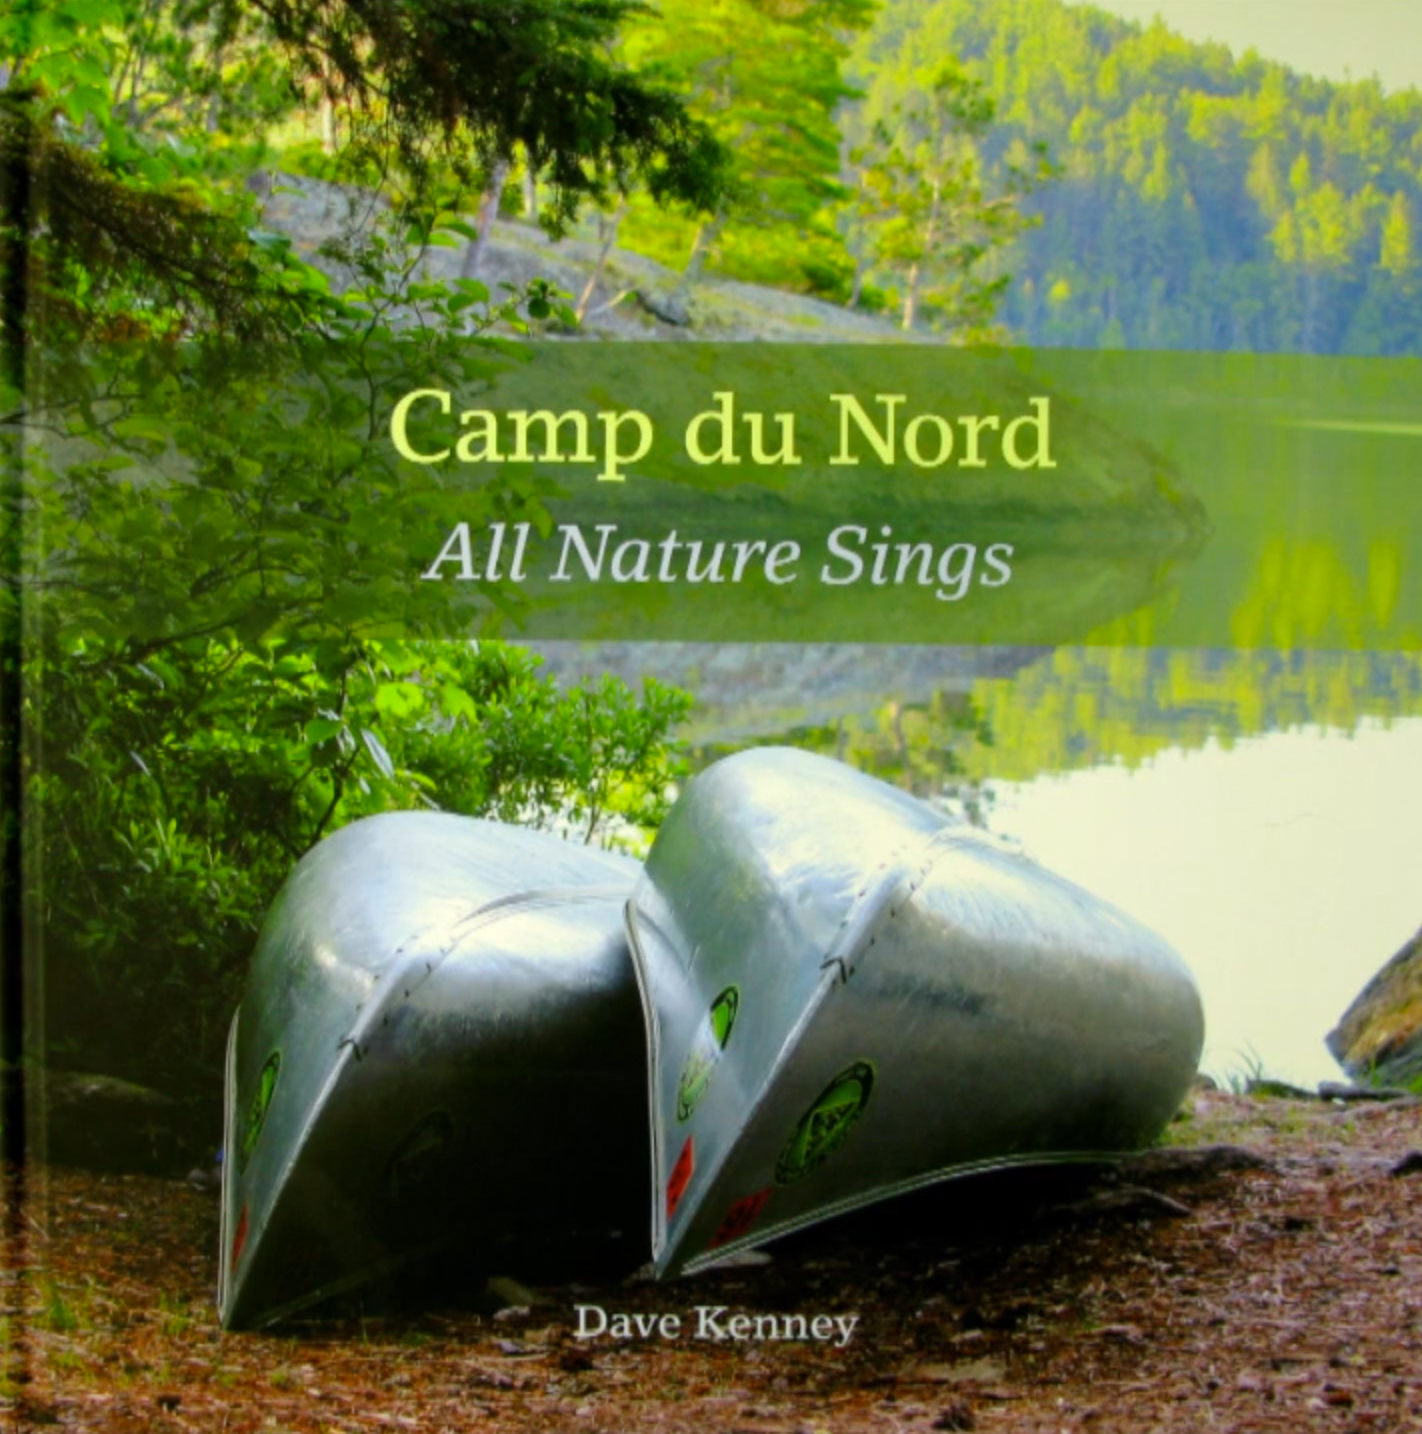 Camp du Nord: All Nature Sings